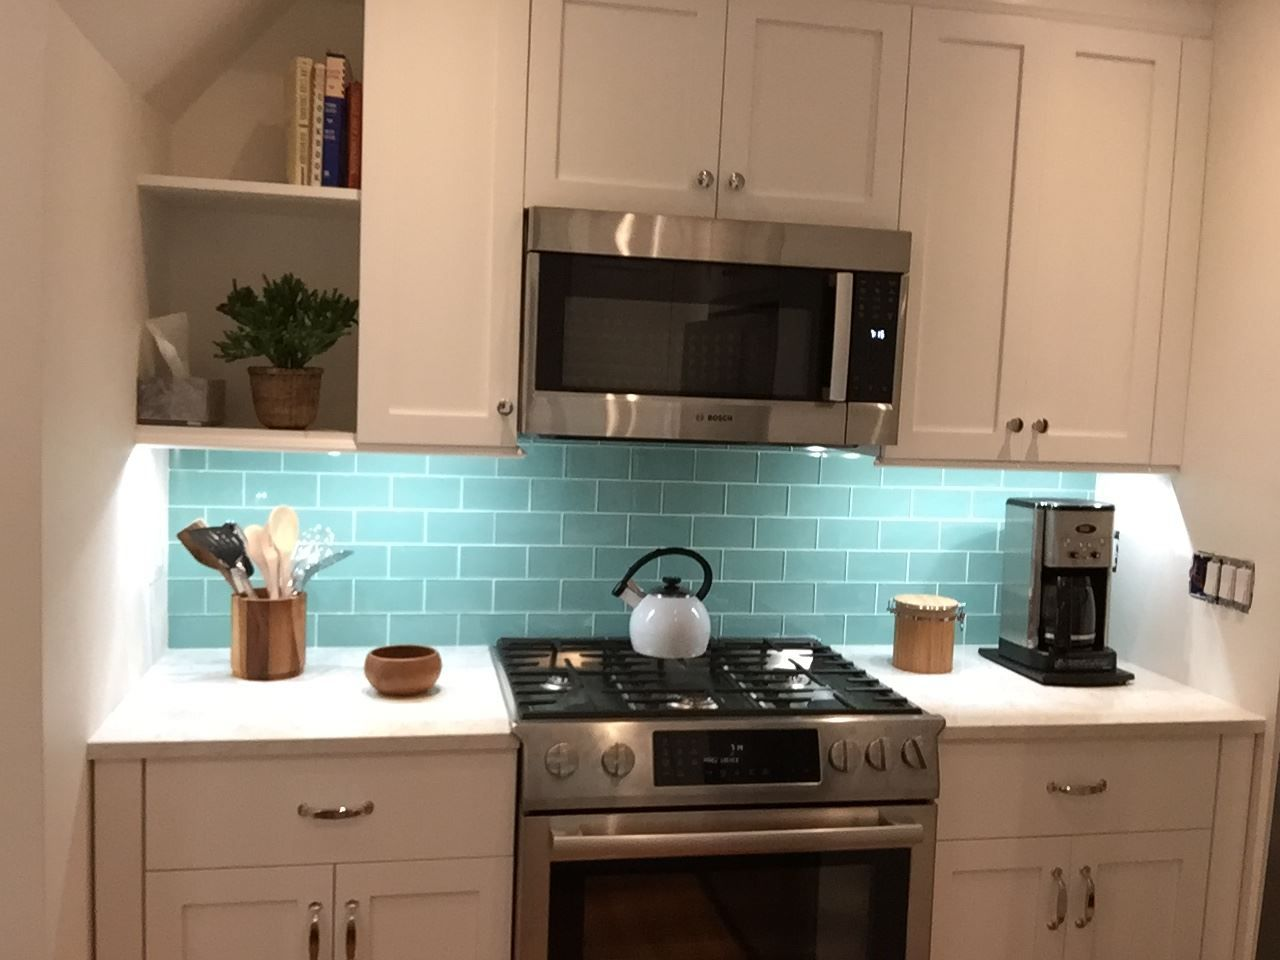 subway tile kitchen backsplash grey grout tiles home from Grouting ...